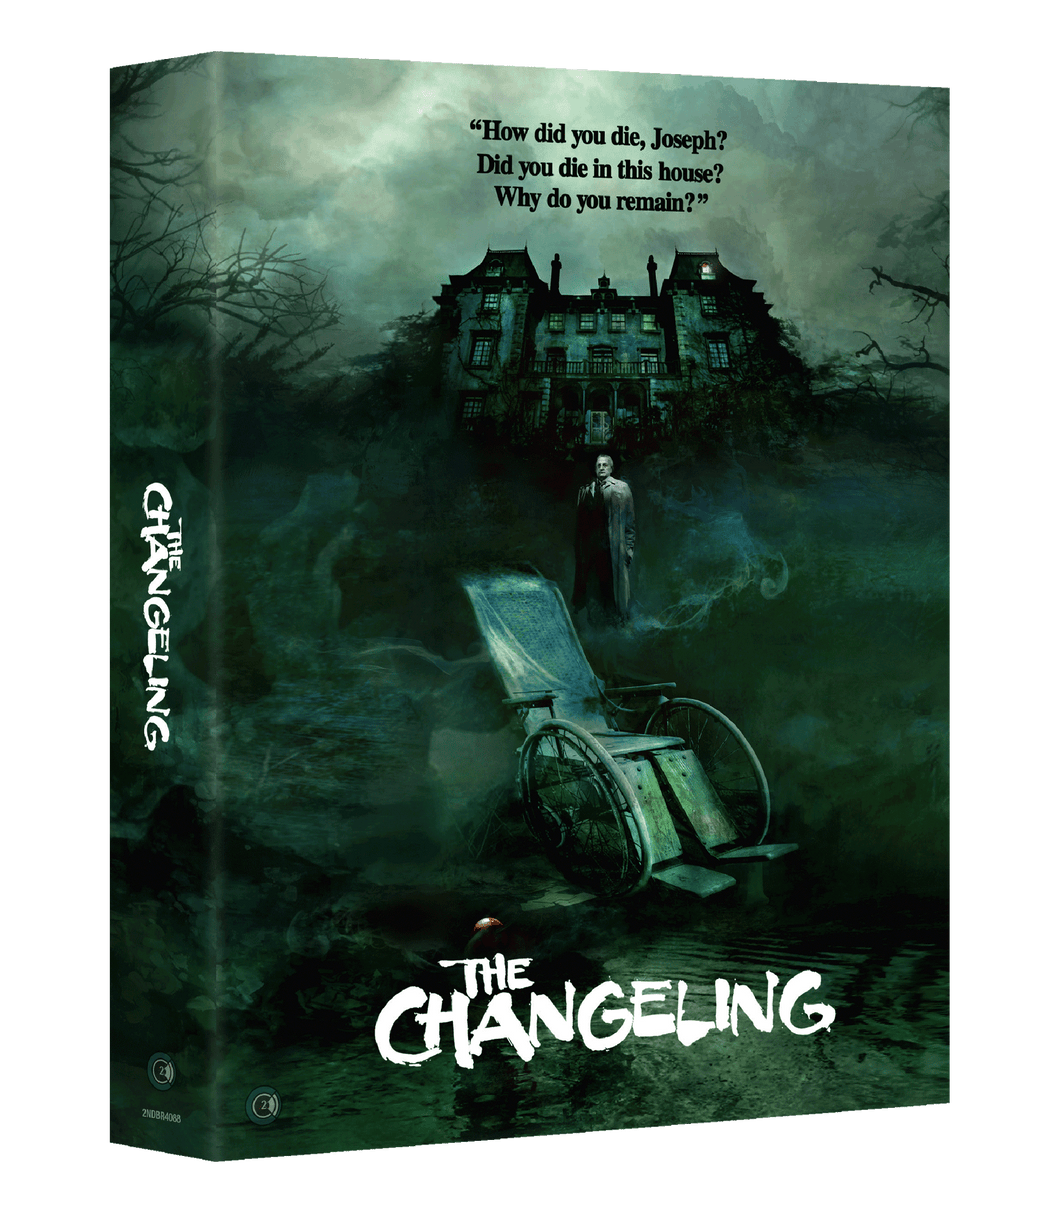 The Changeling Limited Edition Box Set - OUT OF PRINT